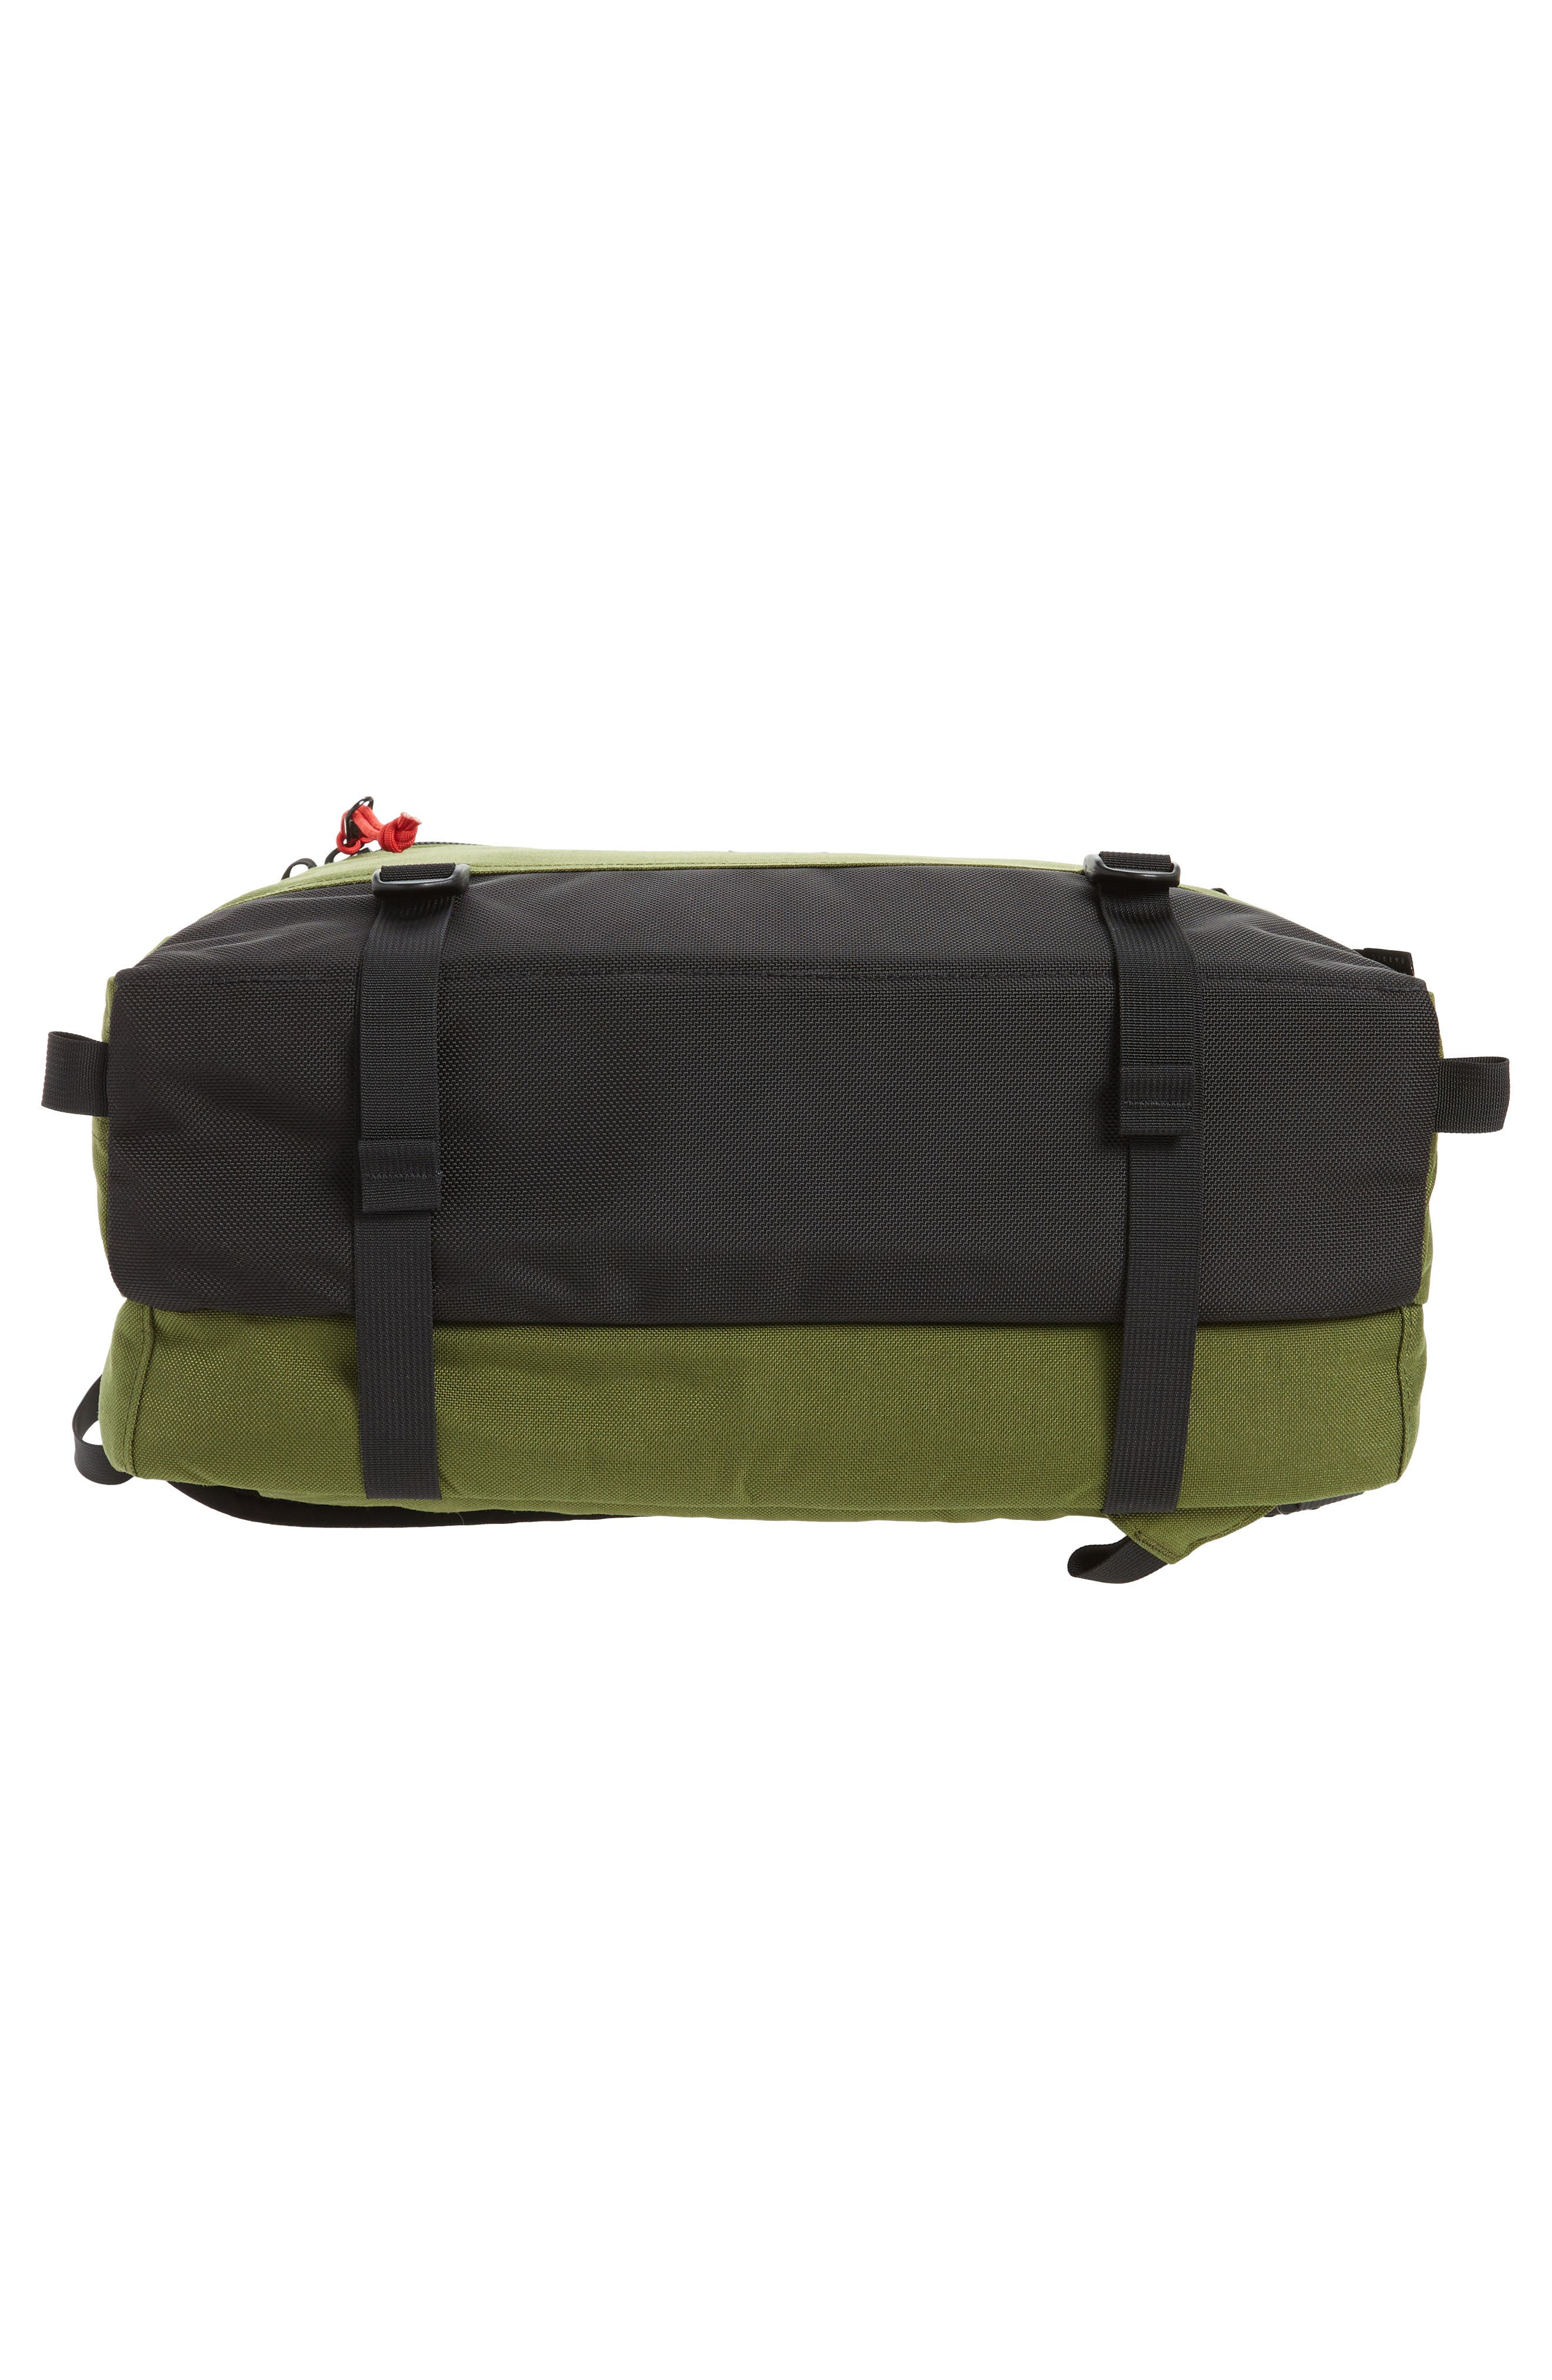 3-Day Briefcase,                             Alternate thumbnail 6, color,                             Olive/ Ballistic Black